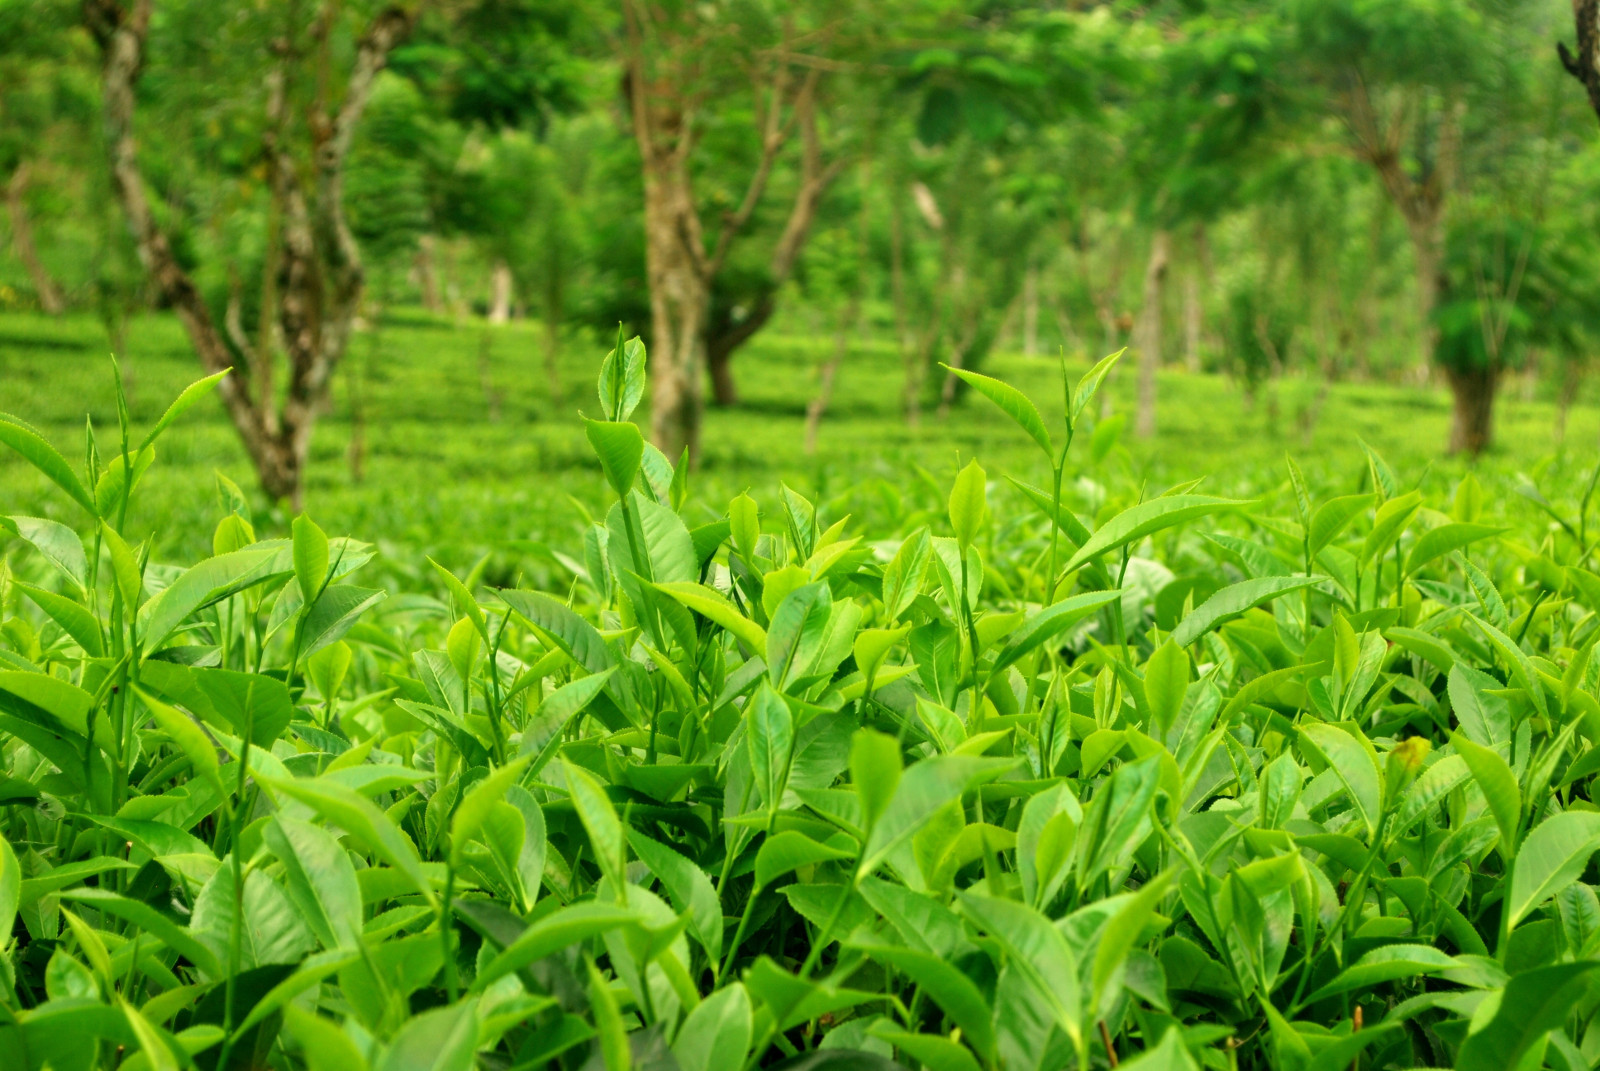 Sri Lankan tea plantations